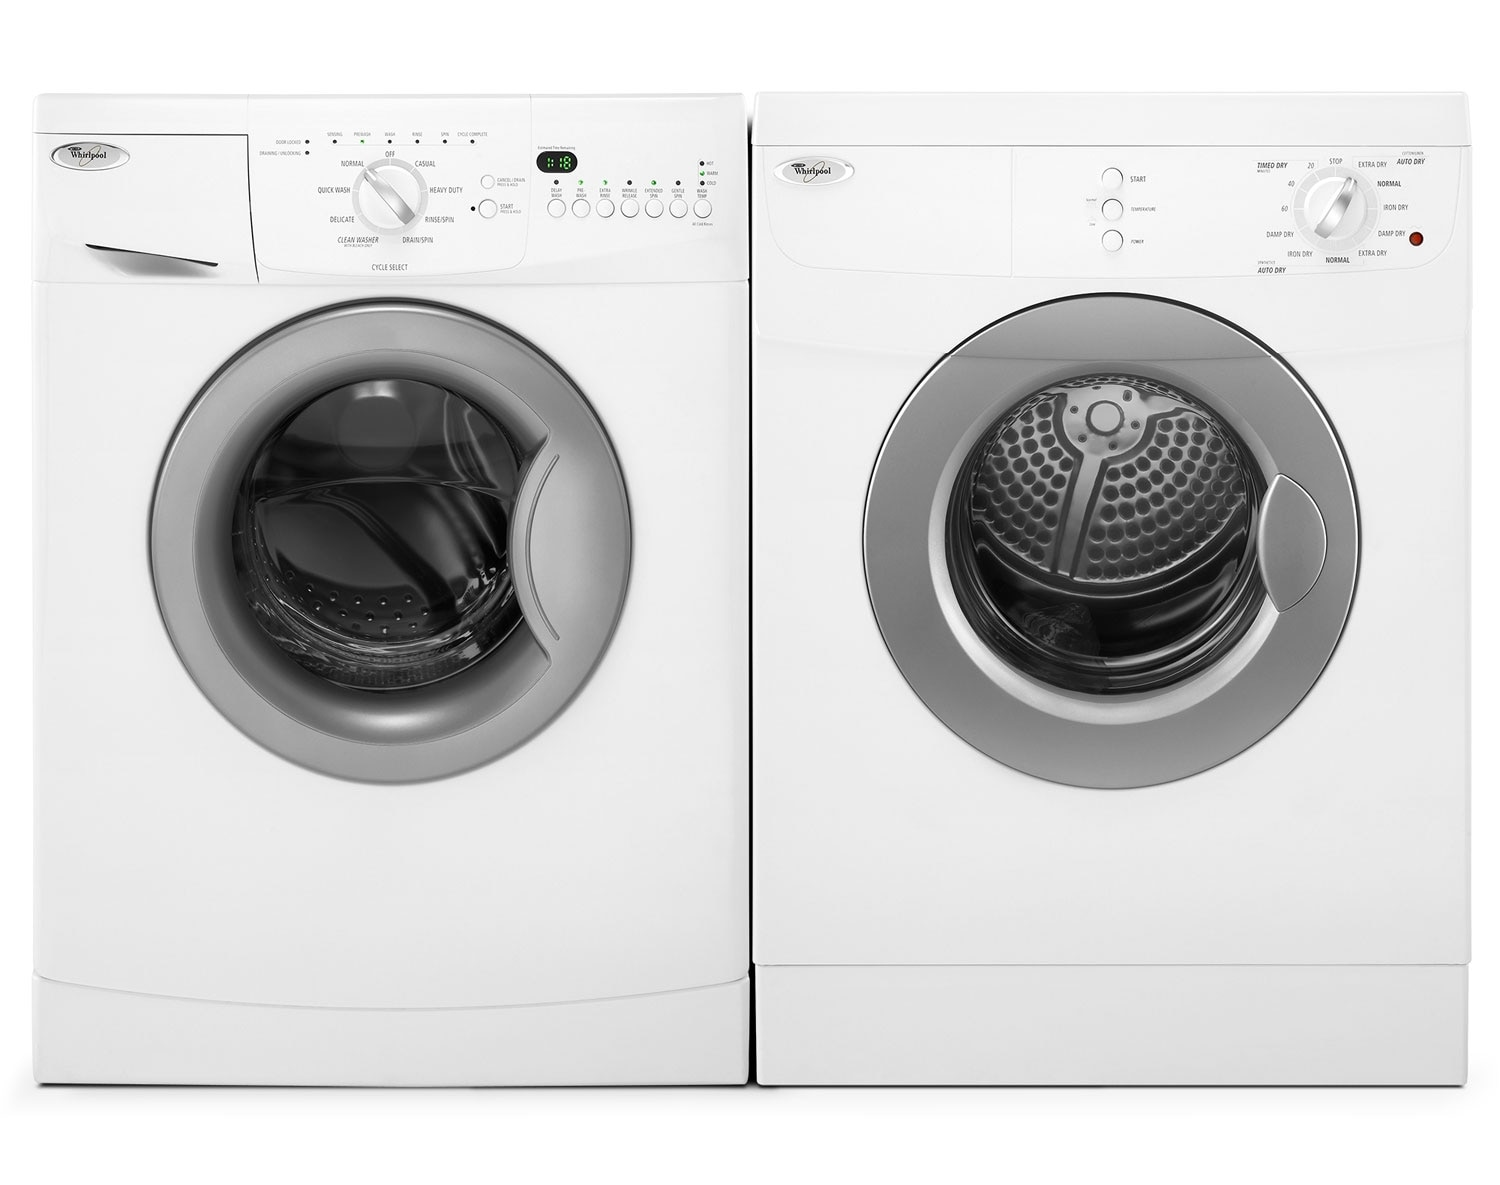 Whirlpool Laundry - WFC7500VW/YWED7500VW